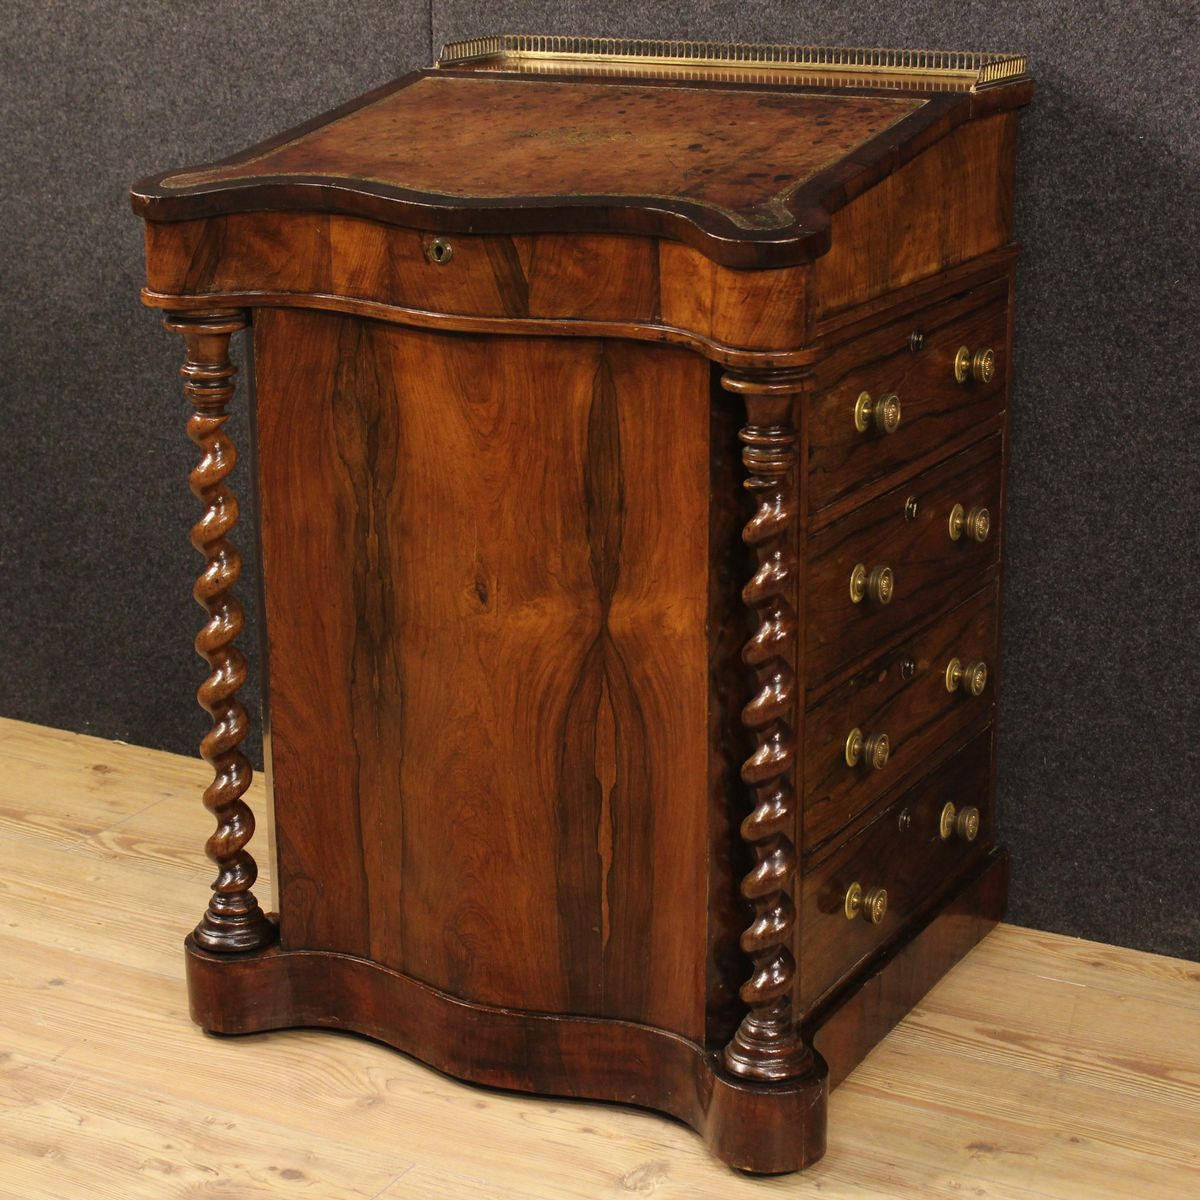 English Palisander and Mahogany Davenport Desk or Secretaire